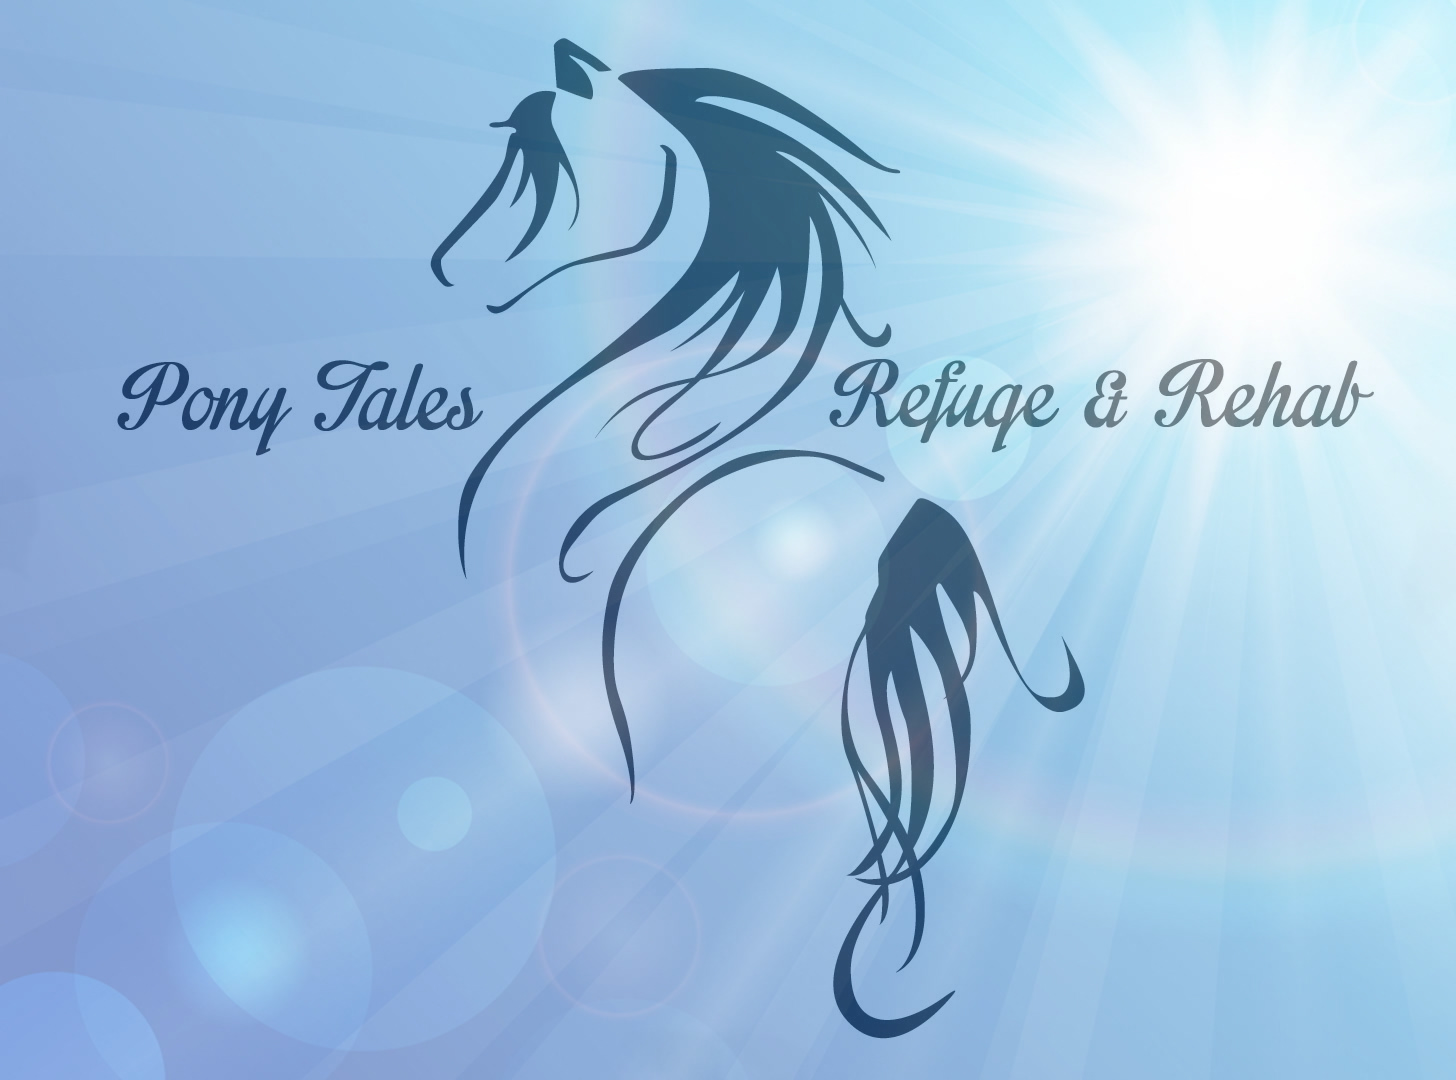 Pony Tales Refuge & Rehab, Inc. primary image